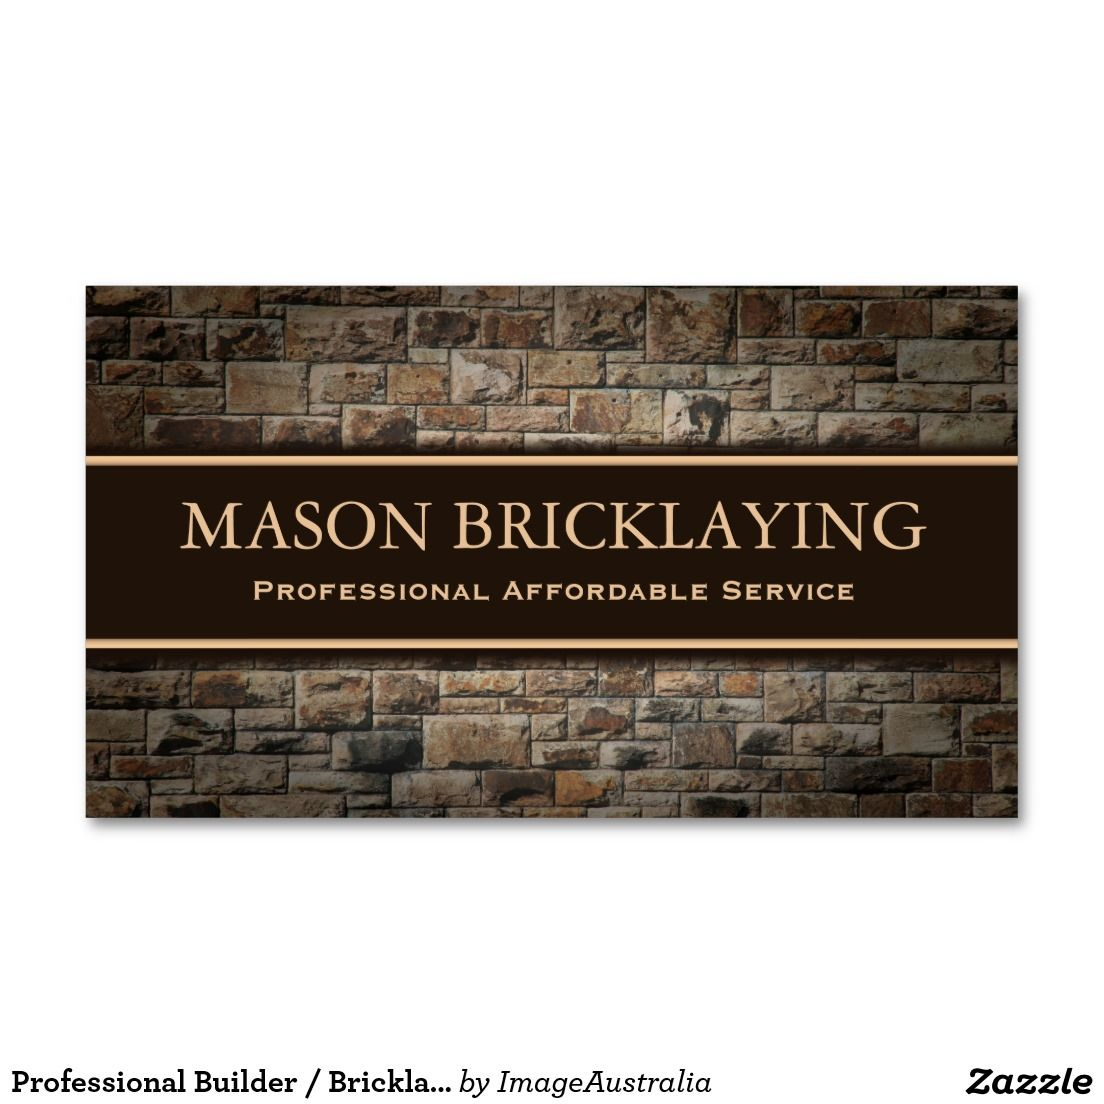 Professional Builder / Bricklaying Business Card | Business Cards ...